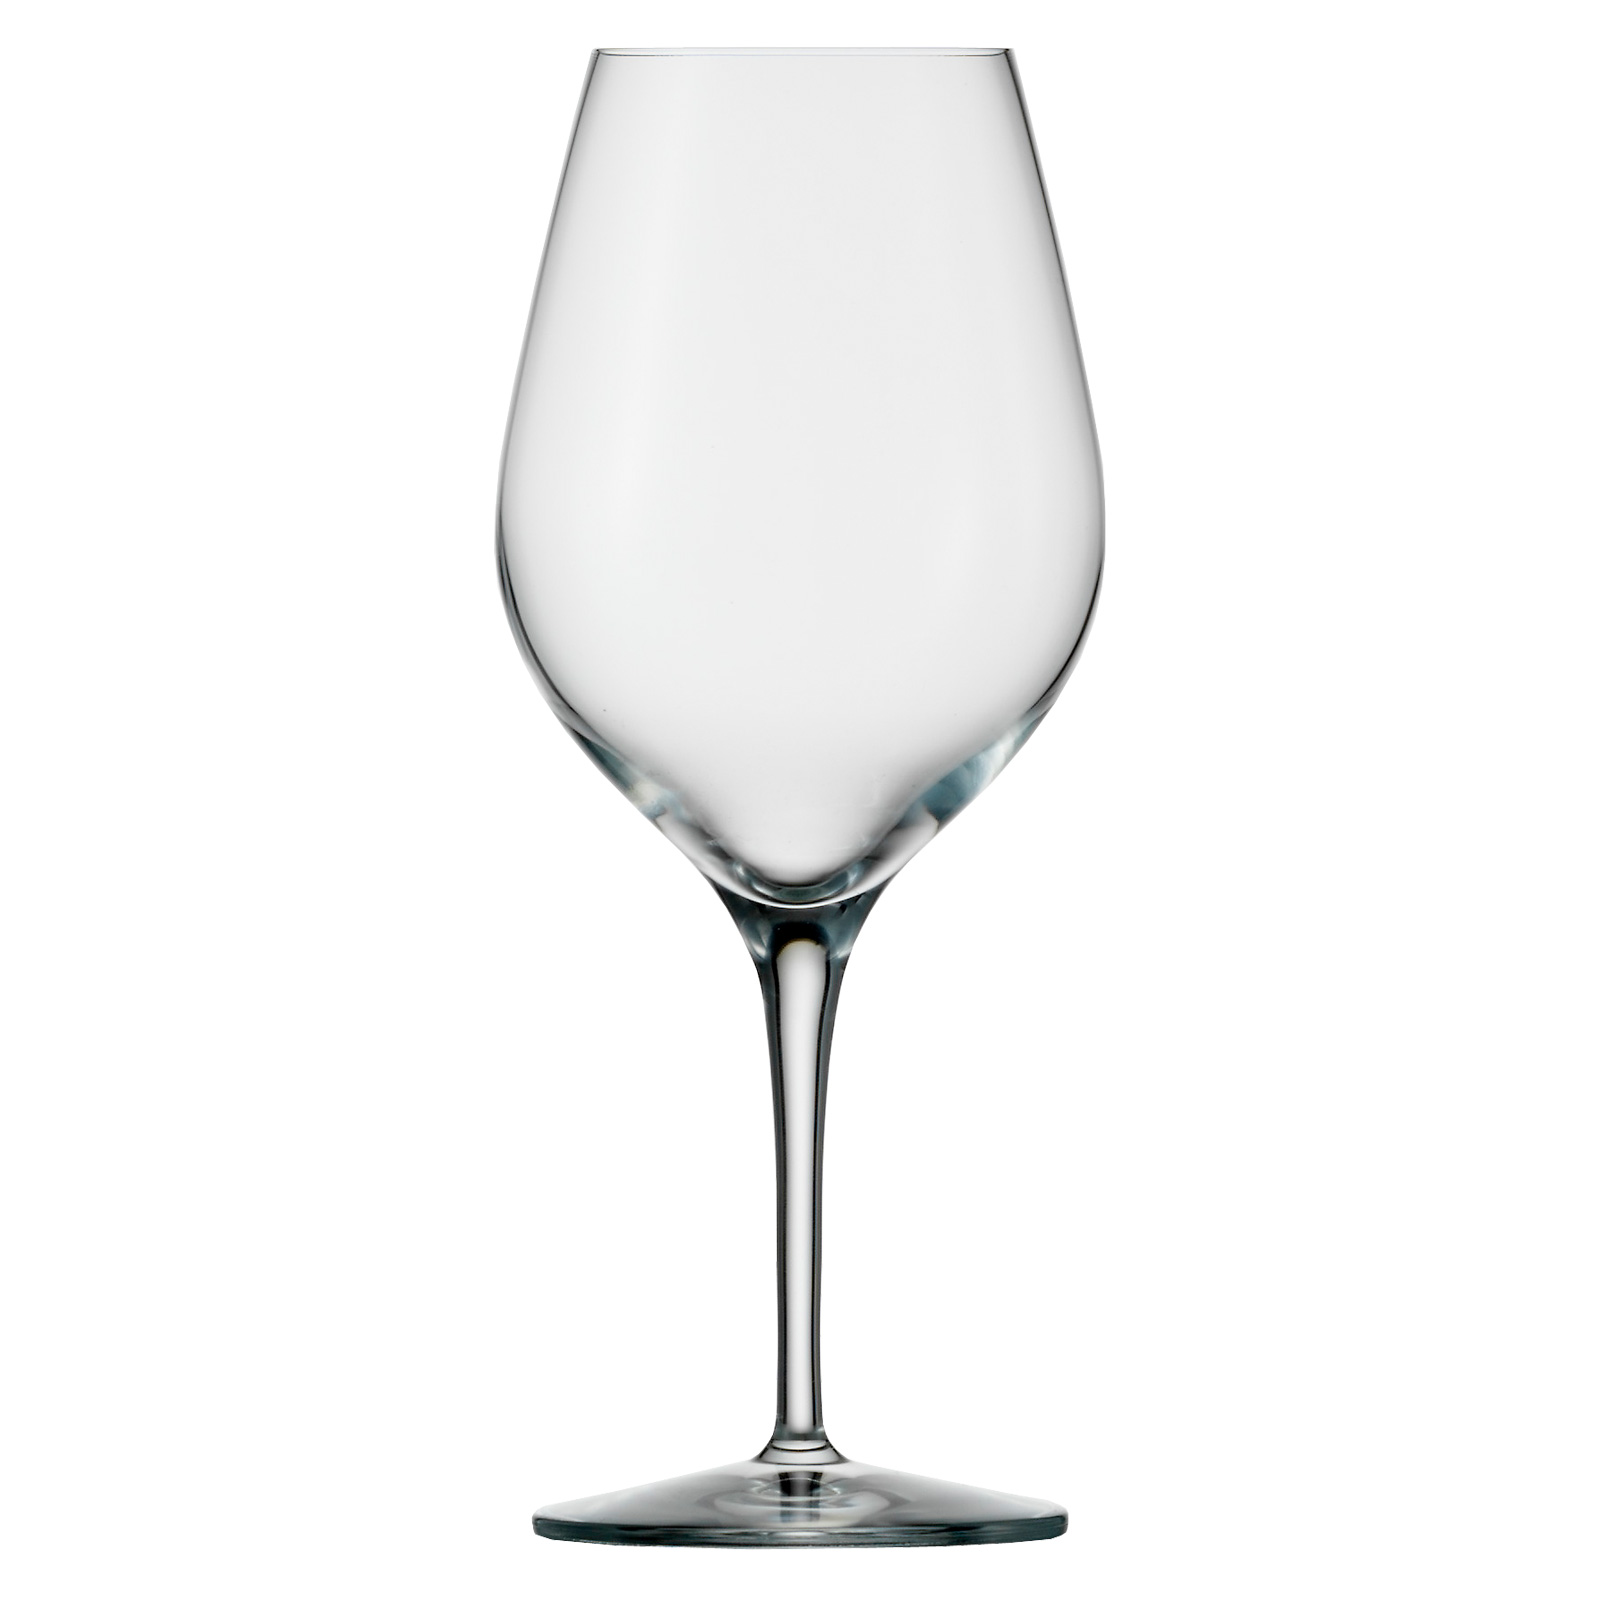 Set of 6 Exquisit White Wines by Stolzle